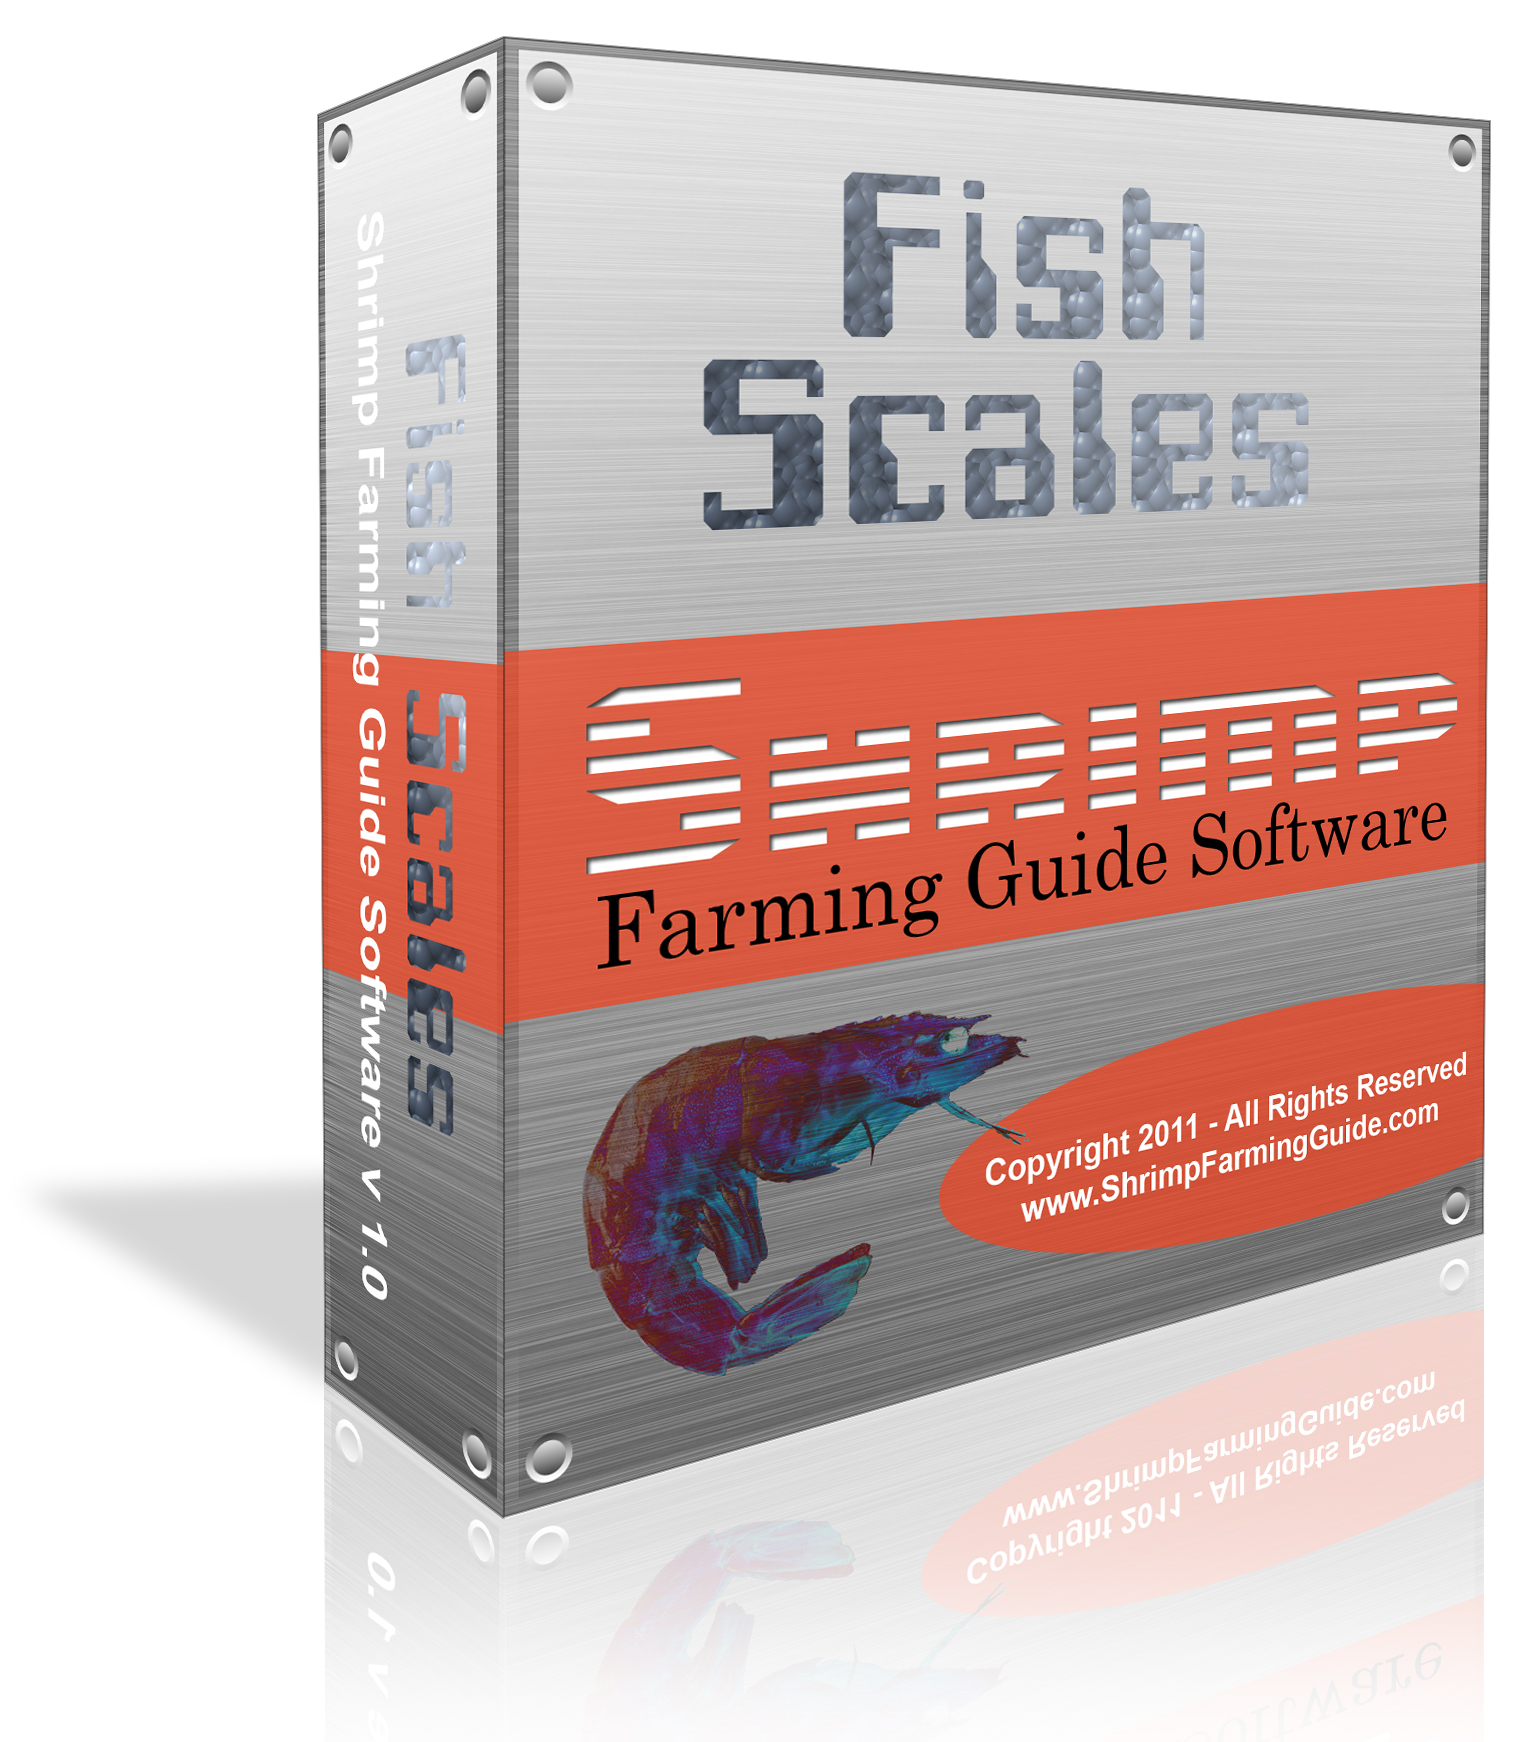 shrimp farming software